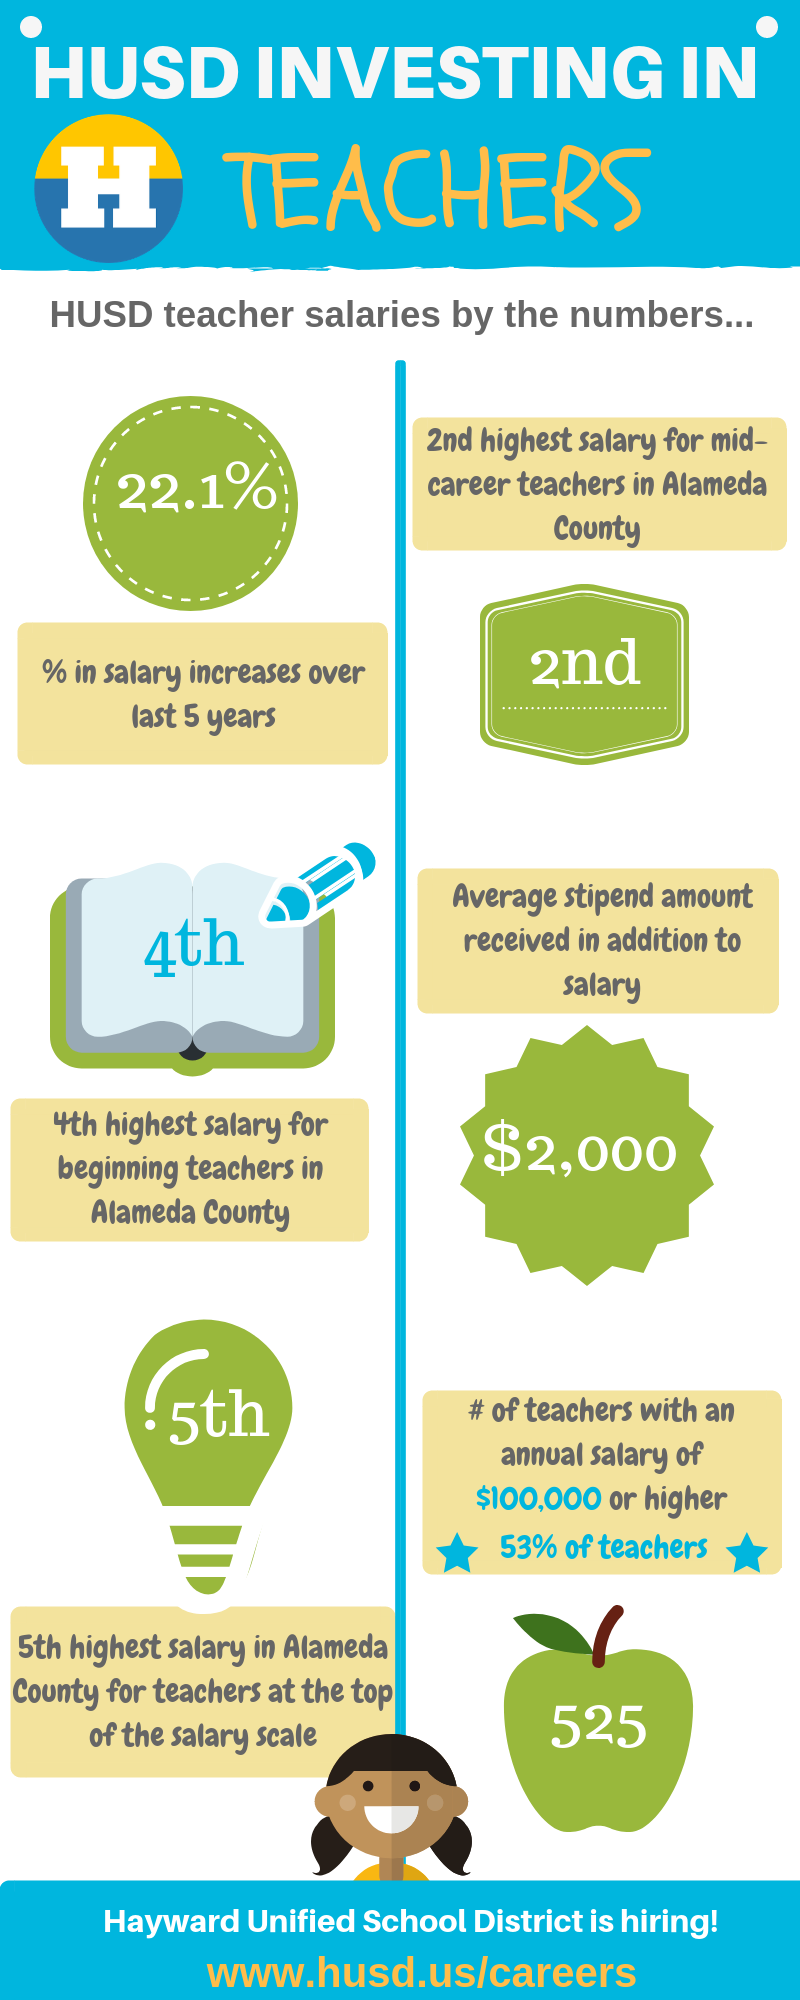 Teacher Salary infographic